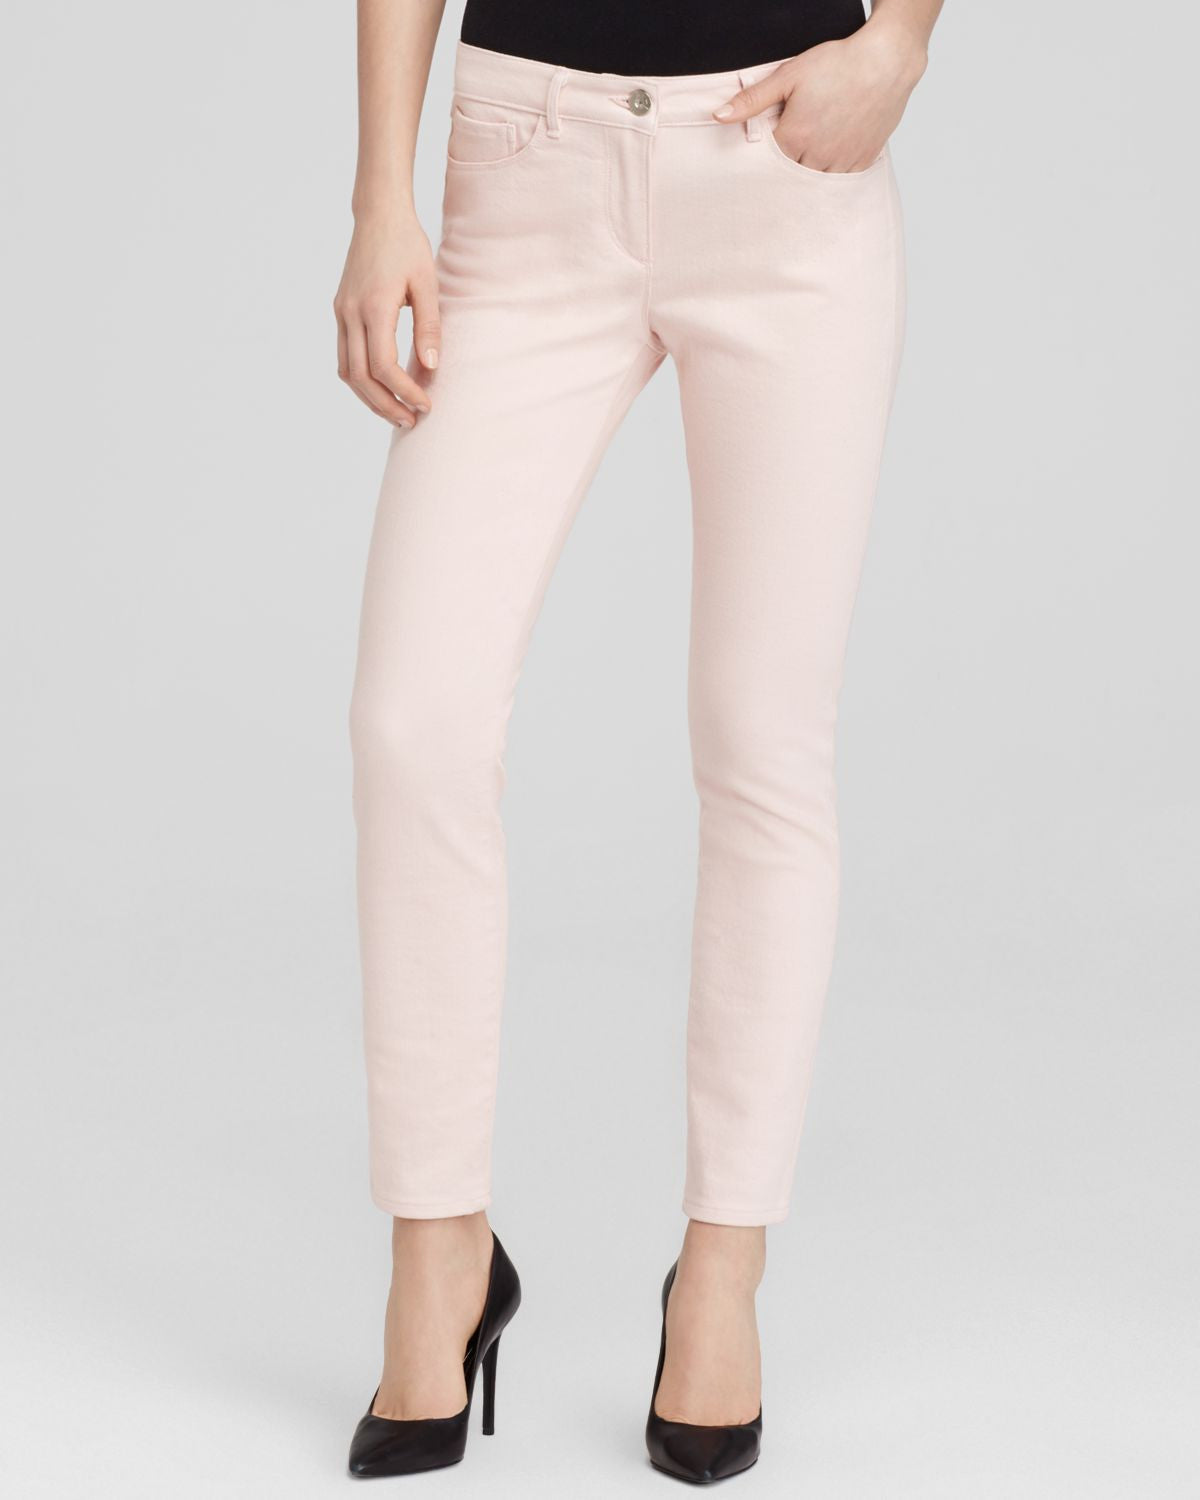 Women's Pink Cropped Pencil Jeans - Sunset